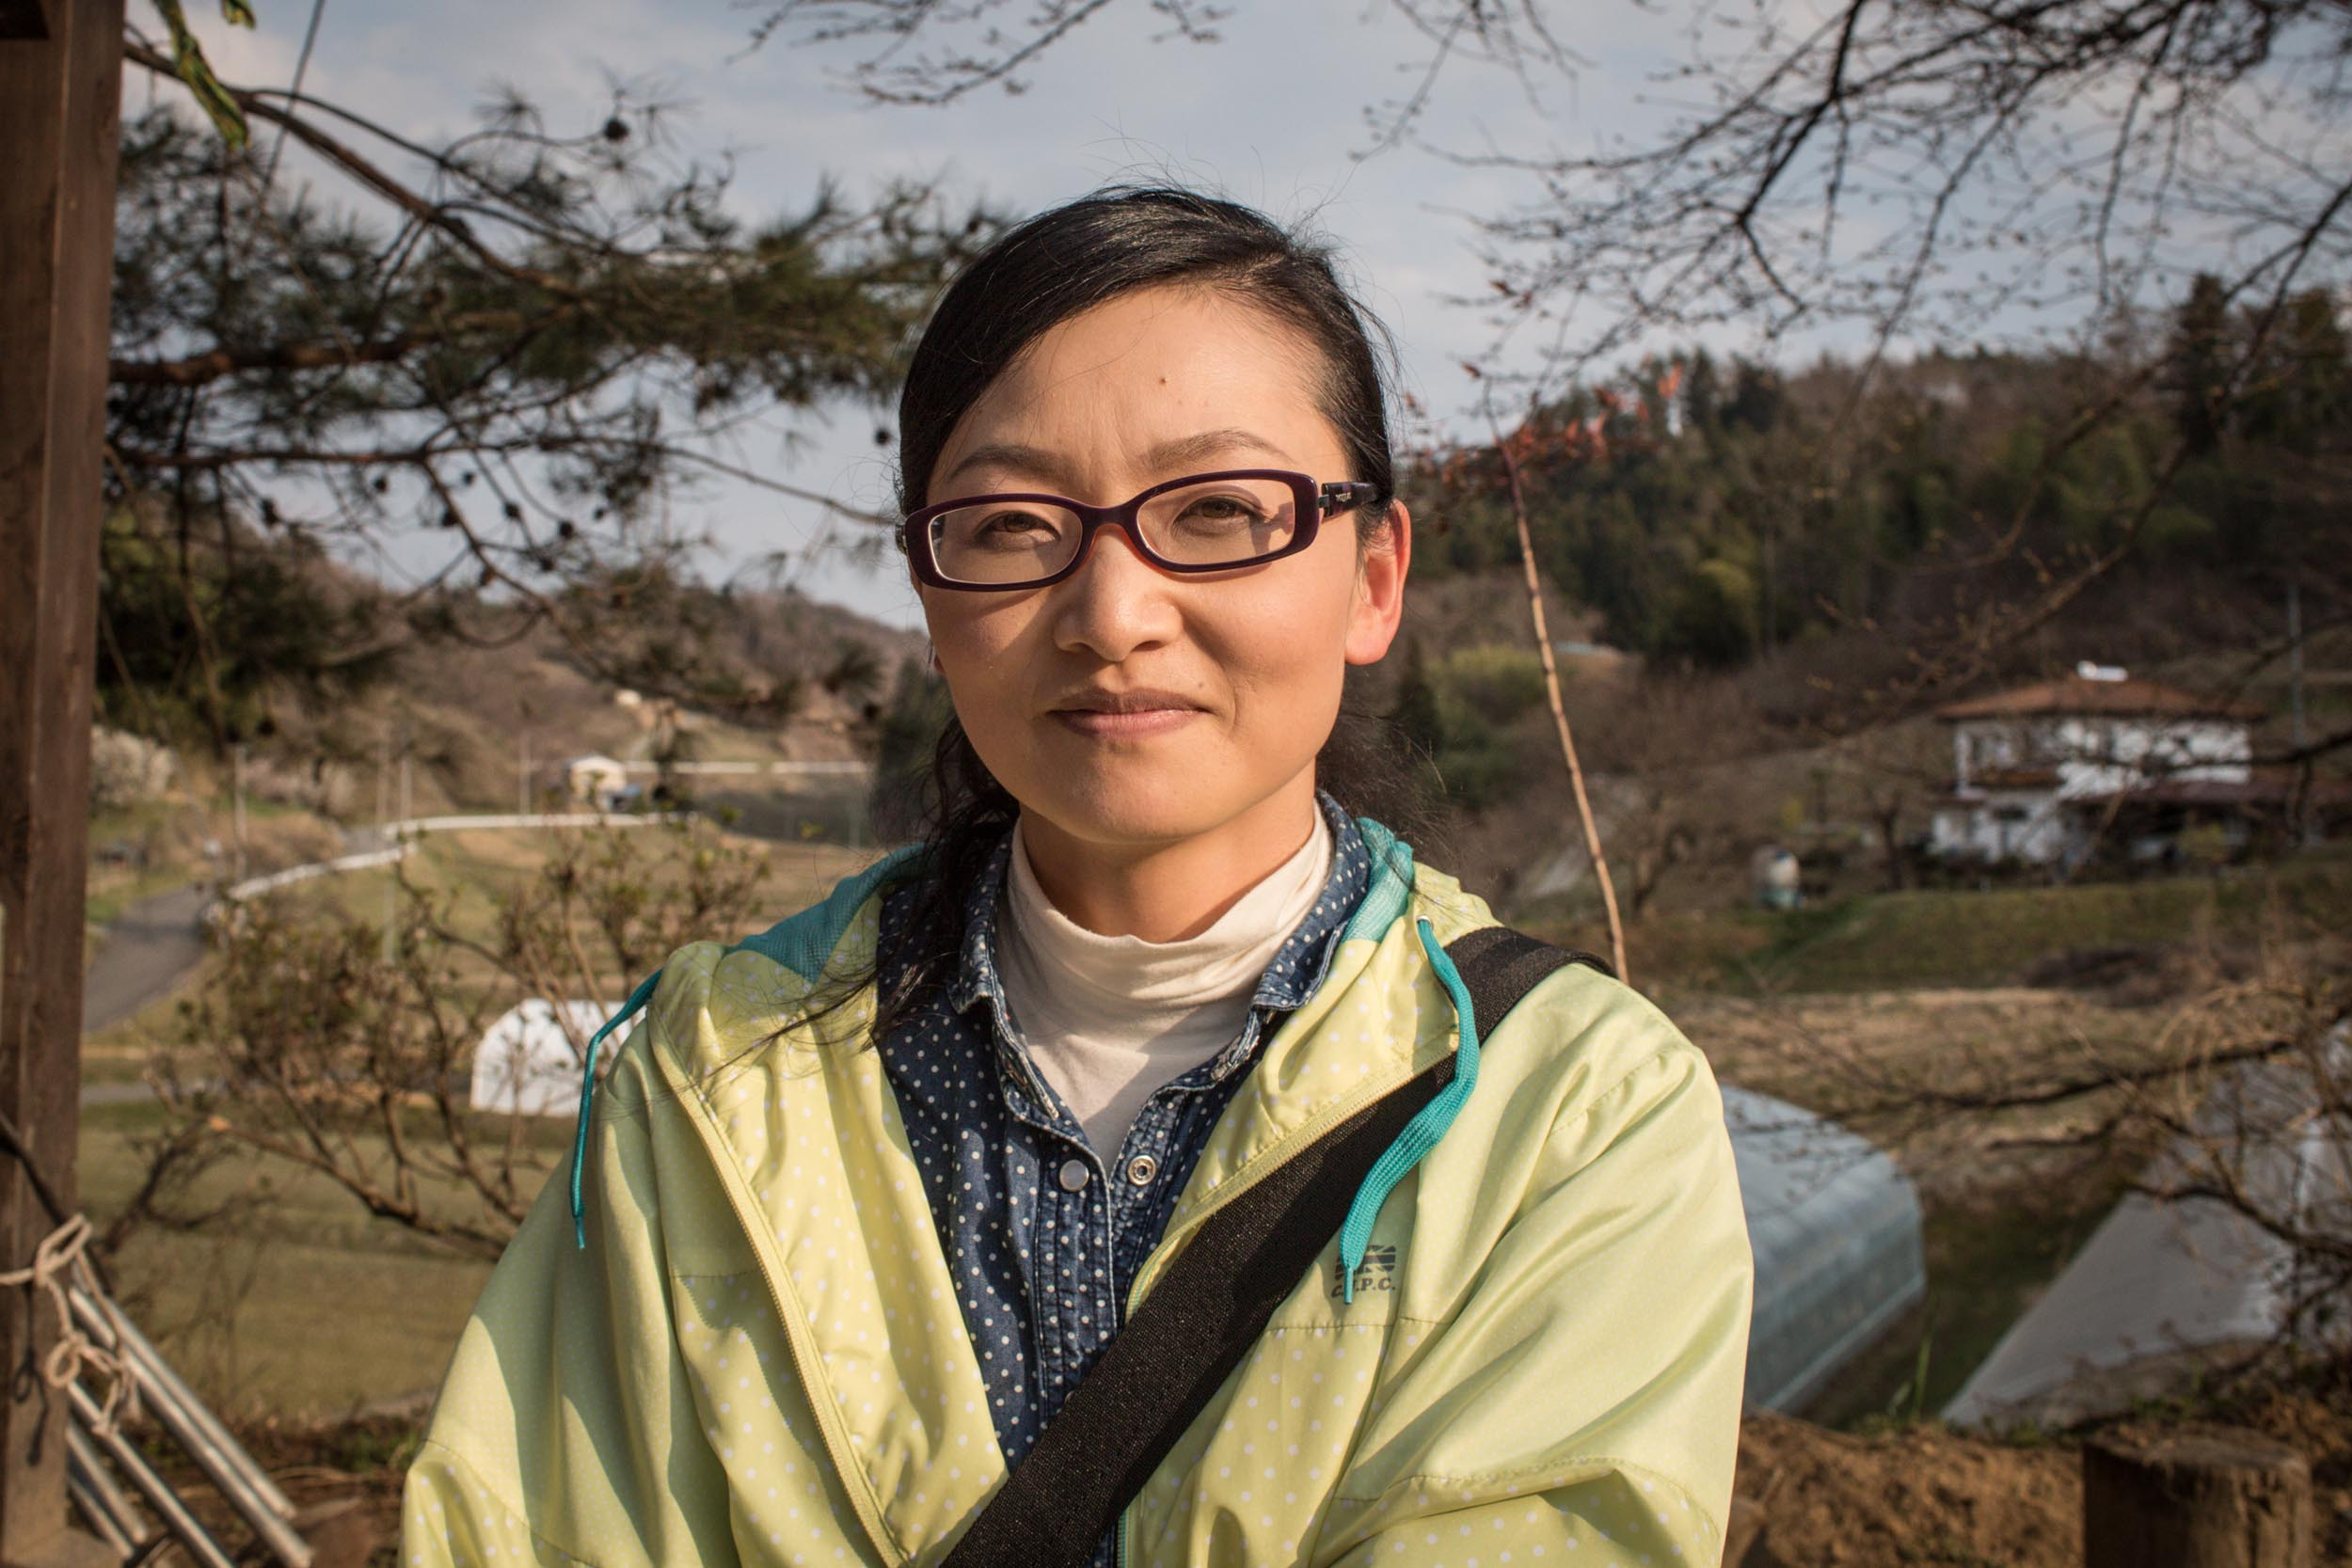 Shizue Sakuma, a 45 year old homemaker from Towa ward of Nihonmatsu city. Ms Sakuma is part of Nariwai Sosho, a lawsuit of 4000 plaintiffs seeking consolation money and the restoration of their lives lost to the nuclear accident.